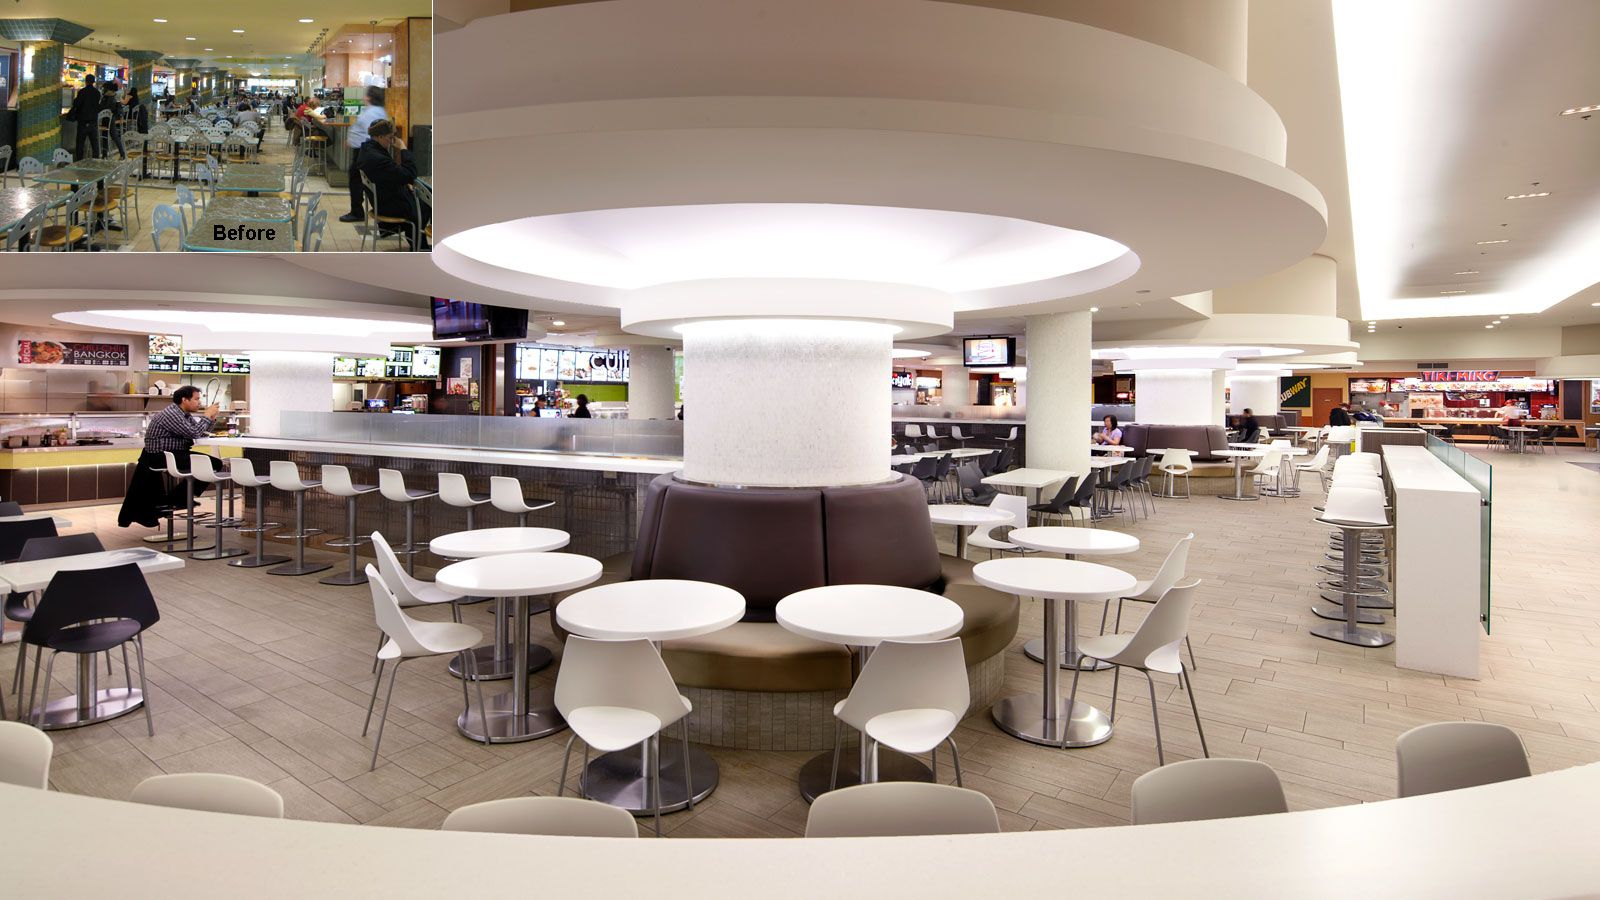 Promenades cath drale food court gha design retail - Boston interiors clearance center ...